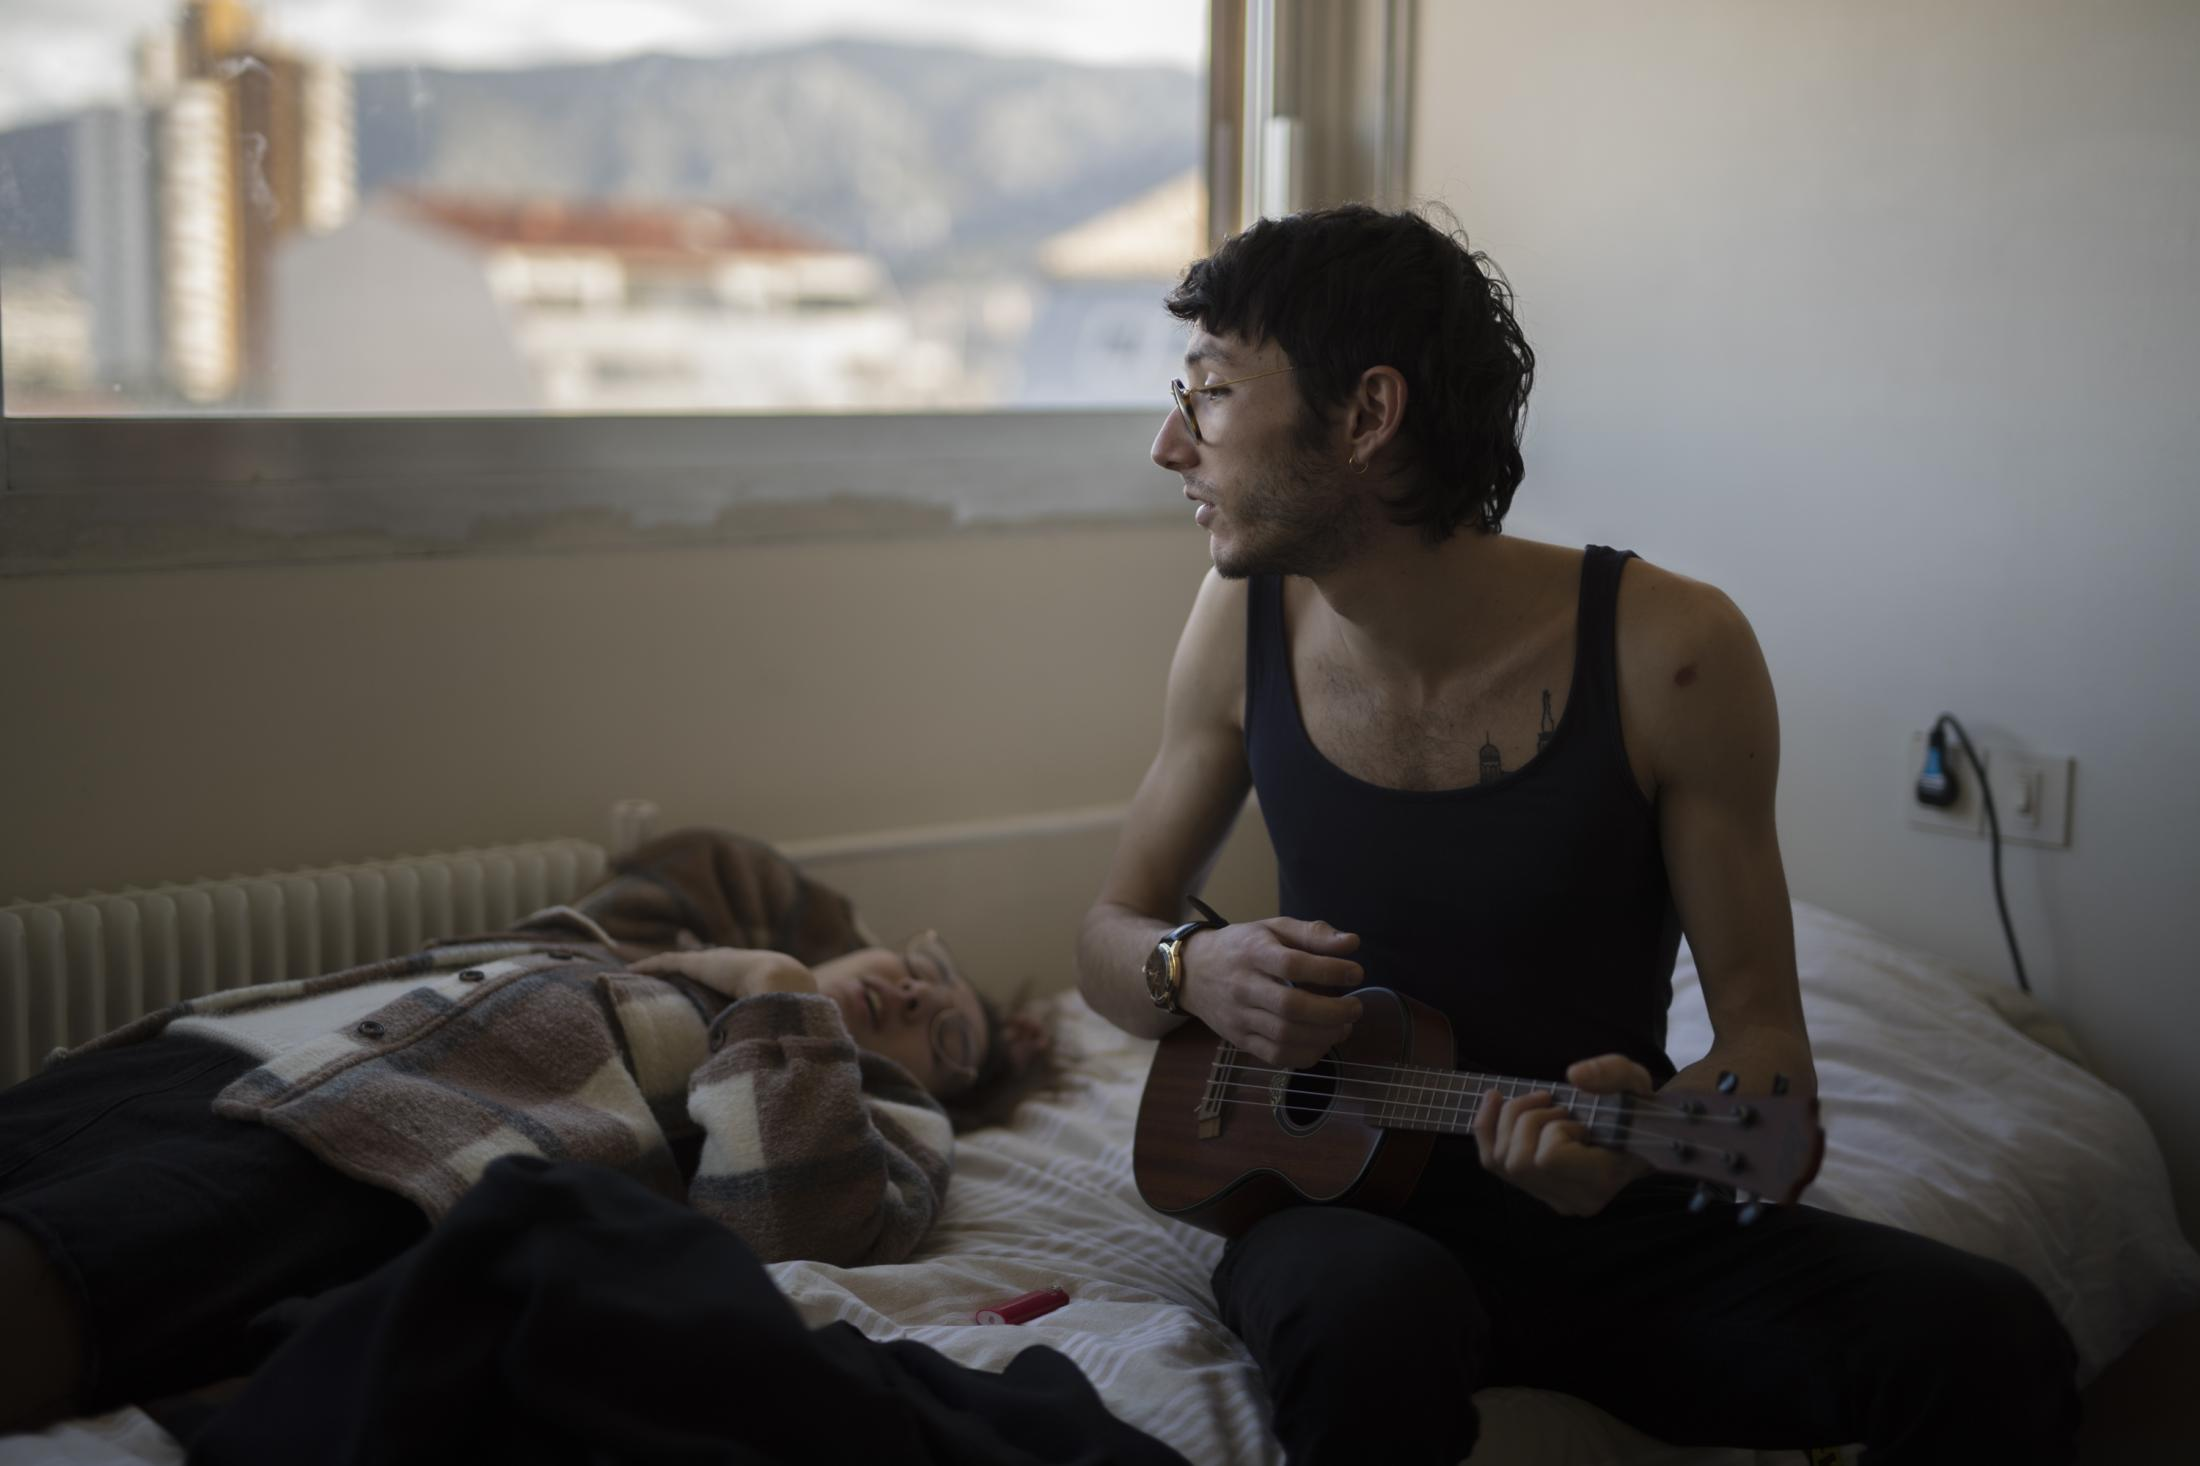 Vincent Achour, a hospital intern in psychiatry and his sister Pauline sing along together to a ukelele on the 8th floor of the intern residency of Marseille's La Timone hospital, Dec 15, 2019.